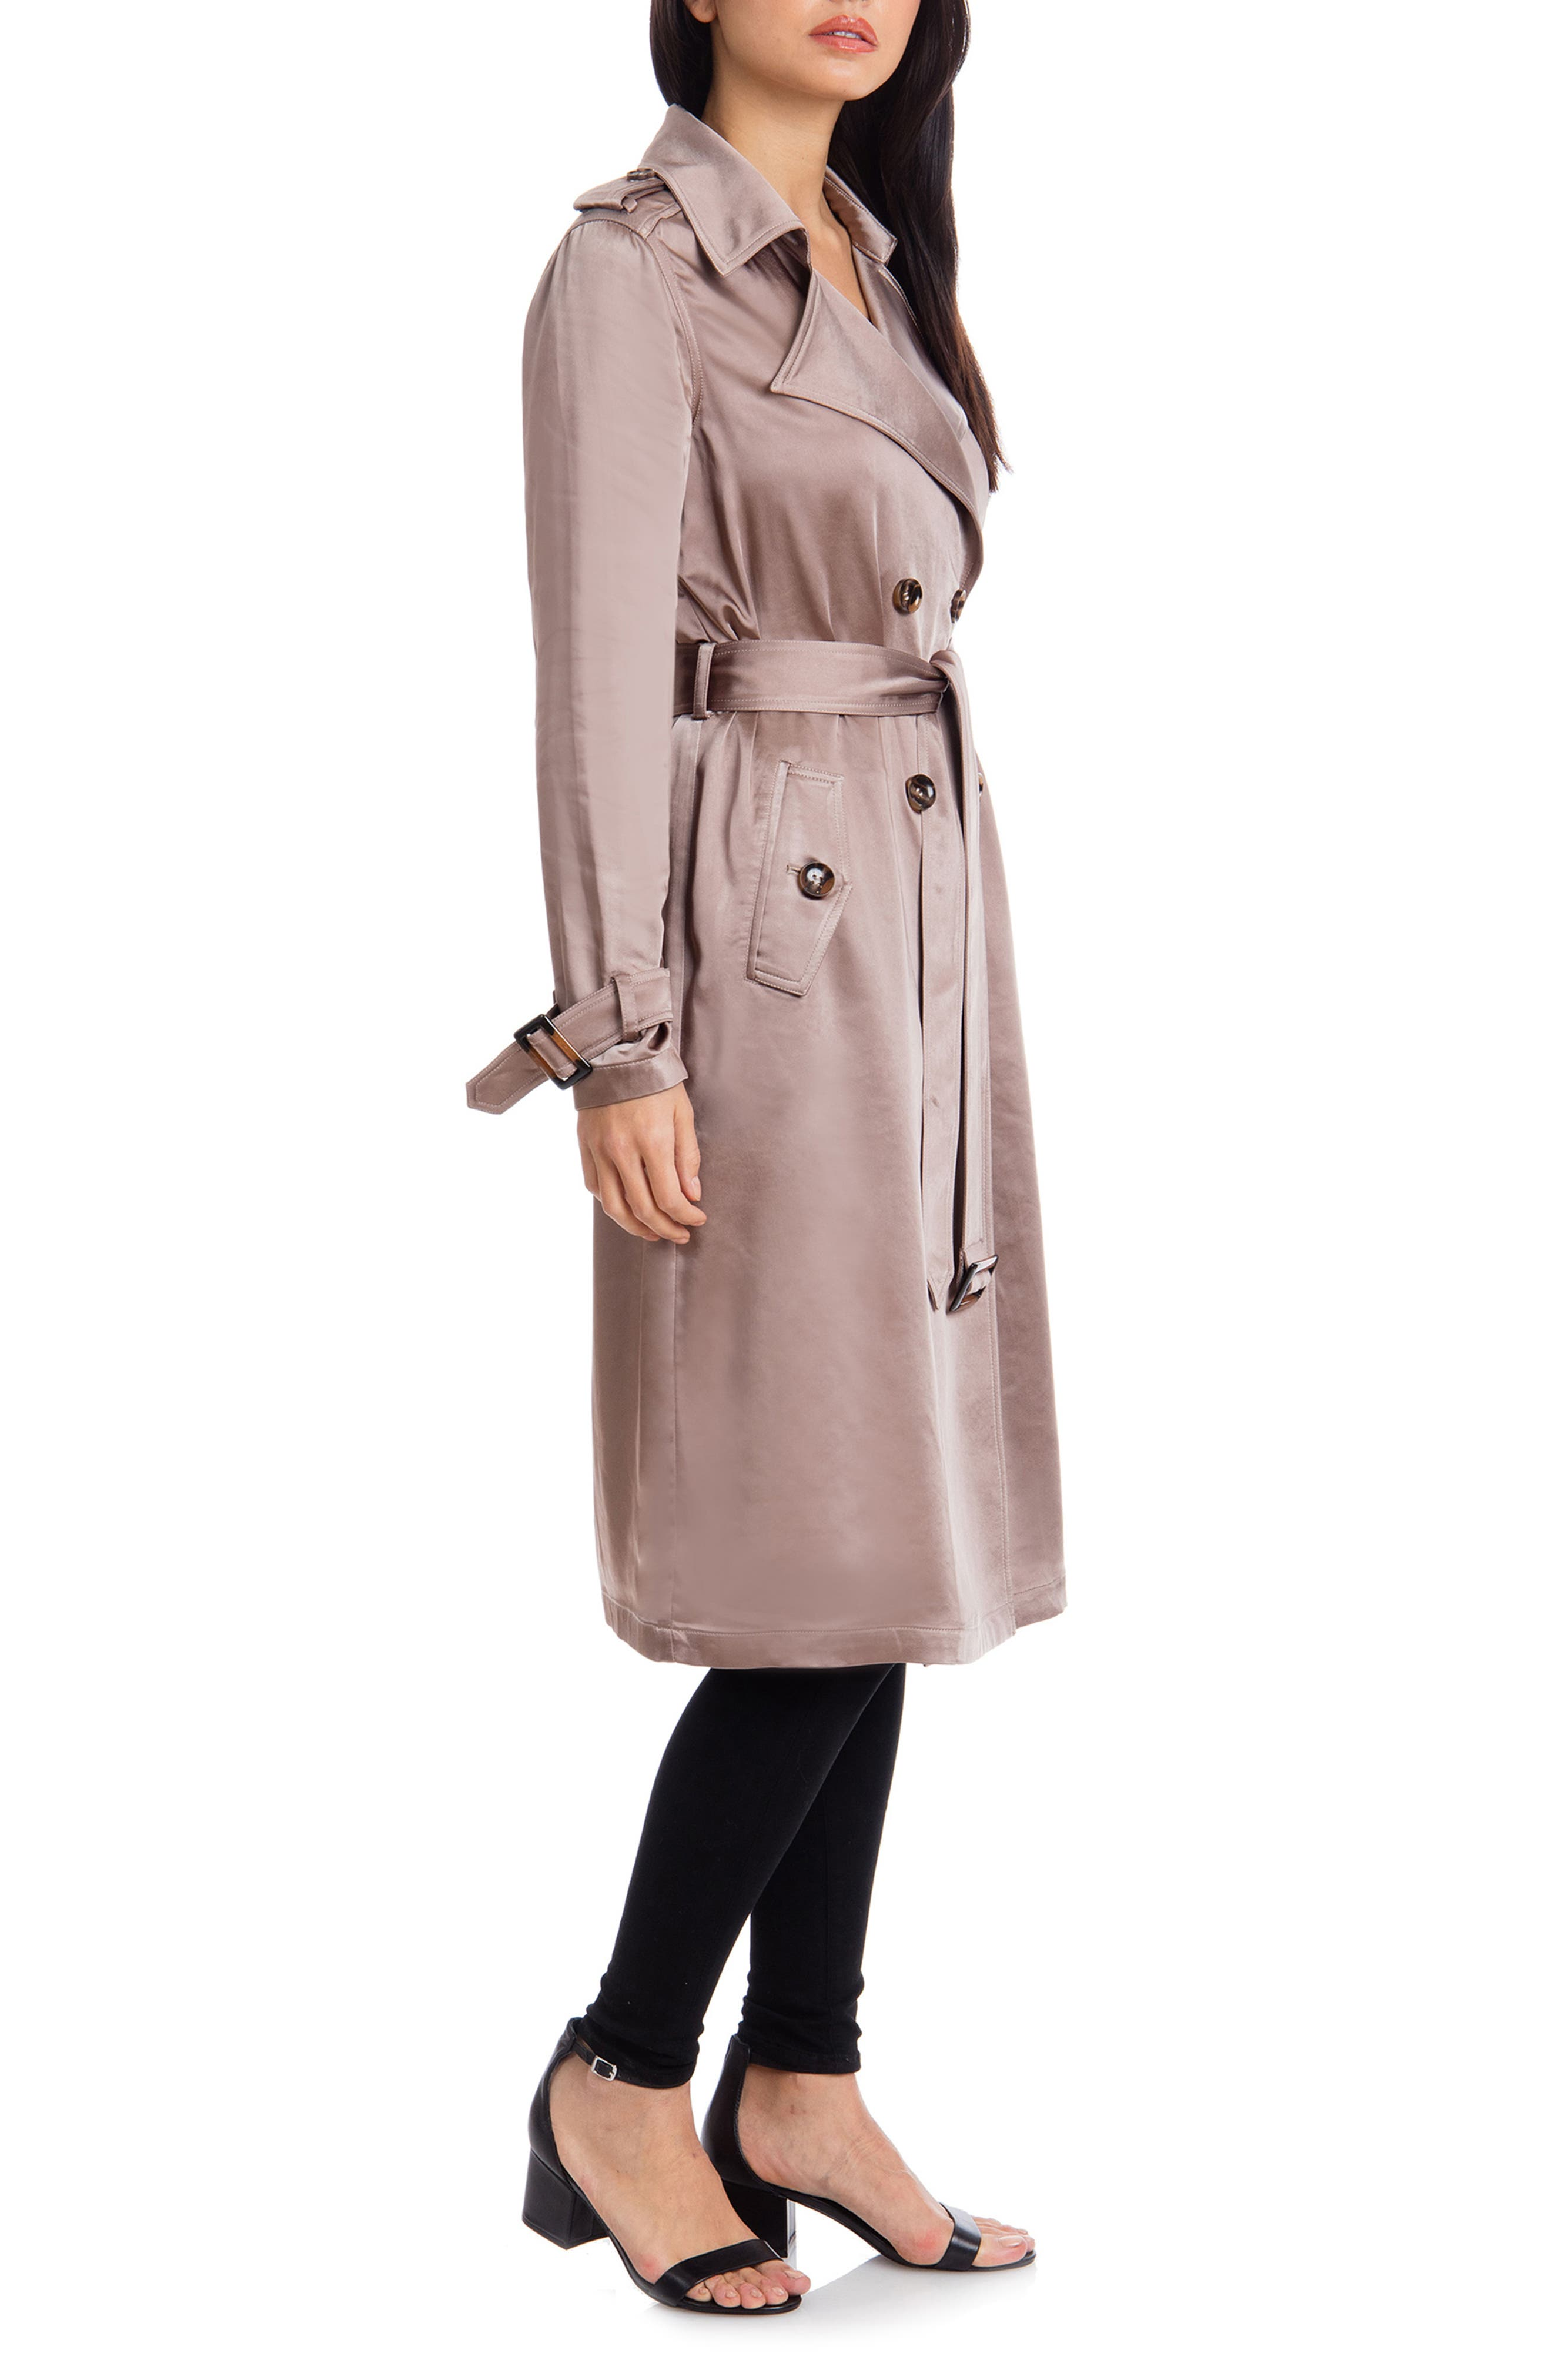 BADGLEY MISCHKA COLLECTION, Badgley Mischka Double Breasted Satin Trench Coat, Alternate thumbnail 3, color, 250